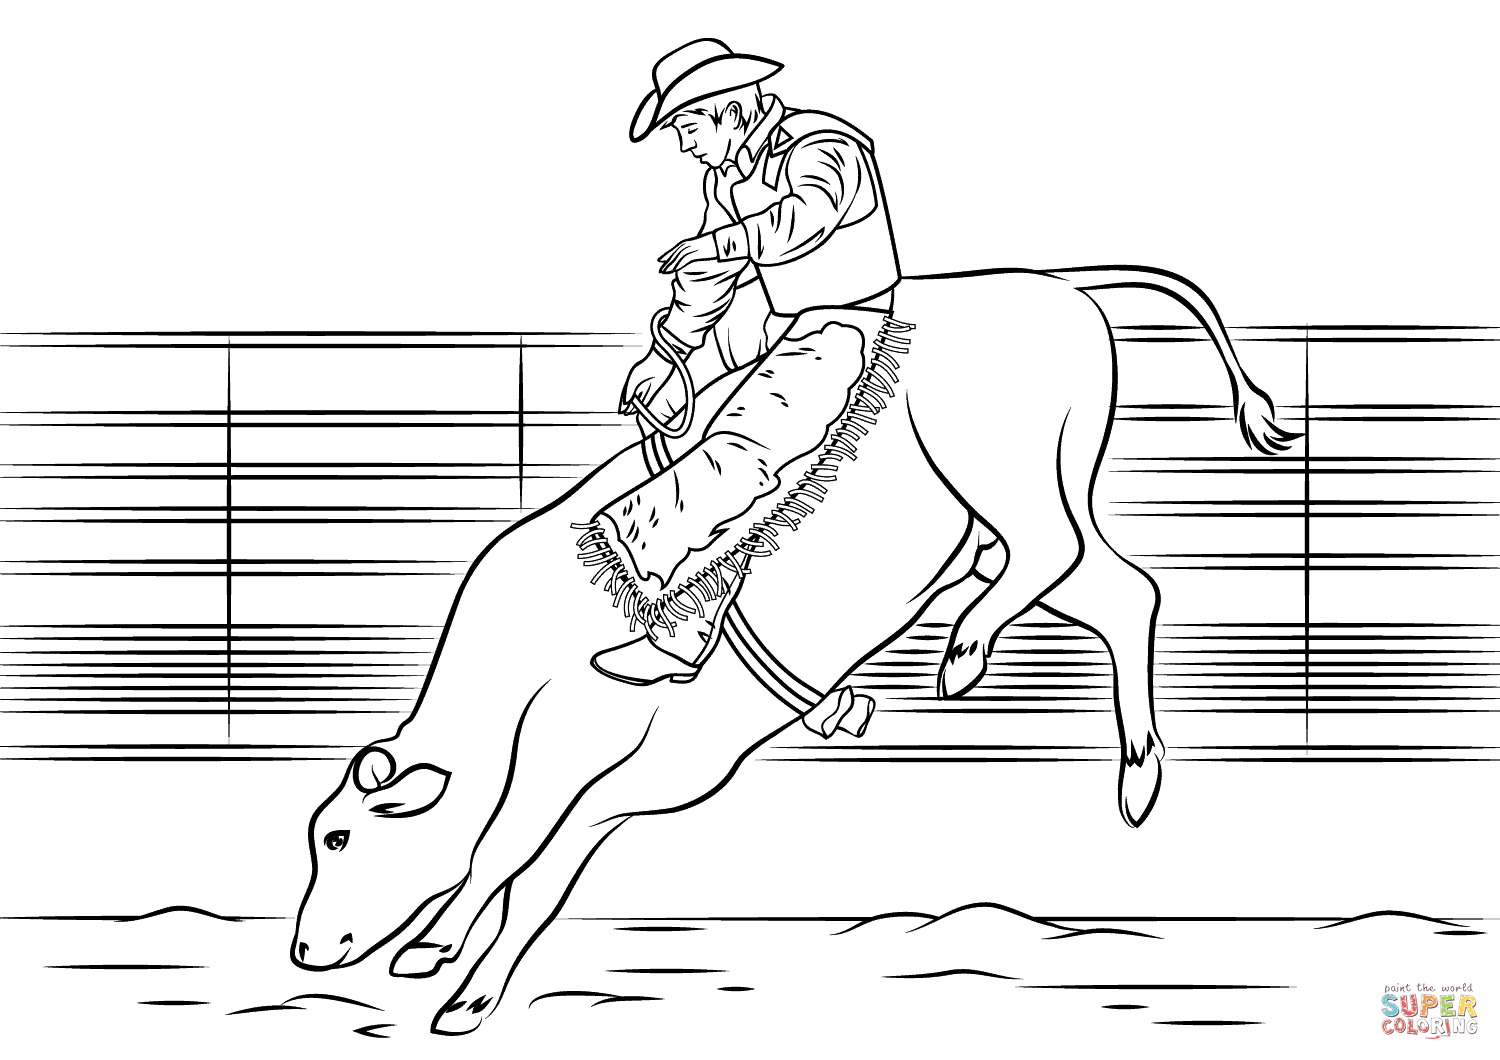 Pbr Coloring Pages